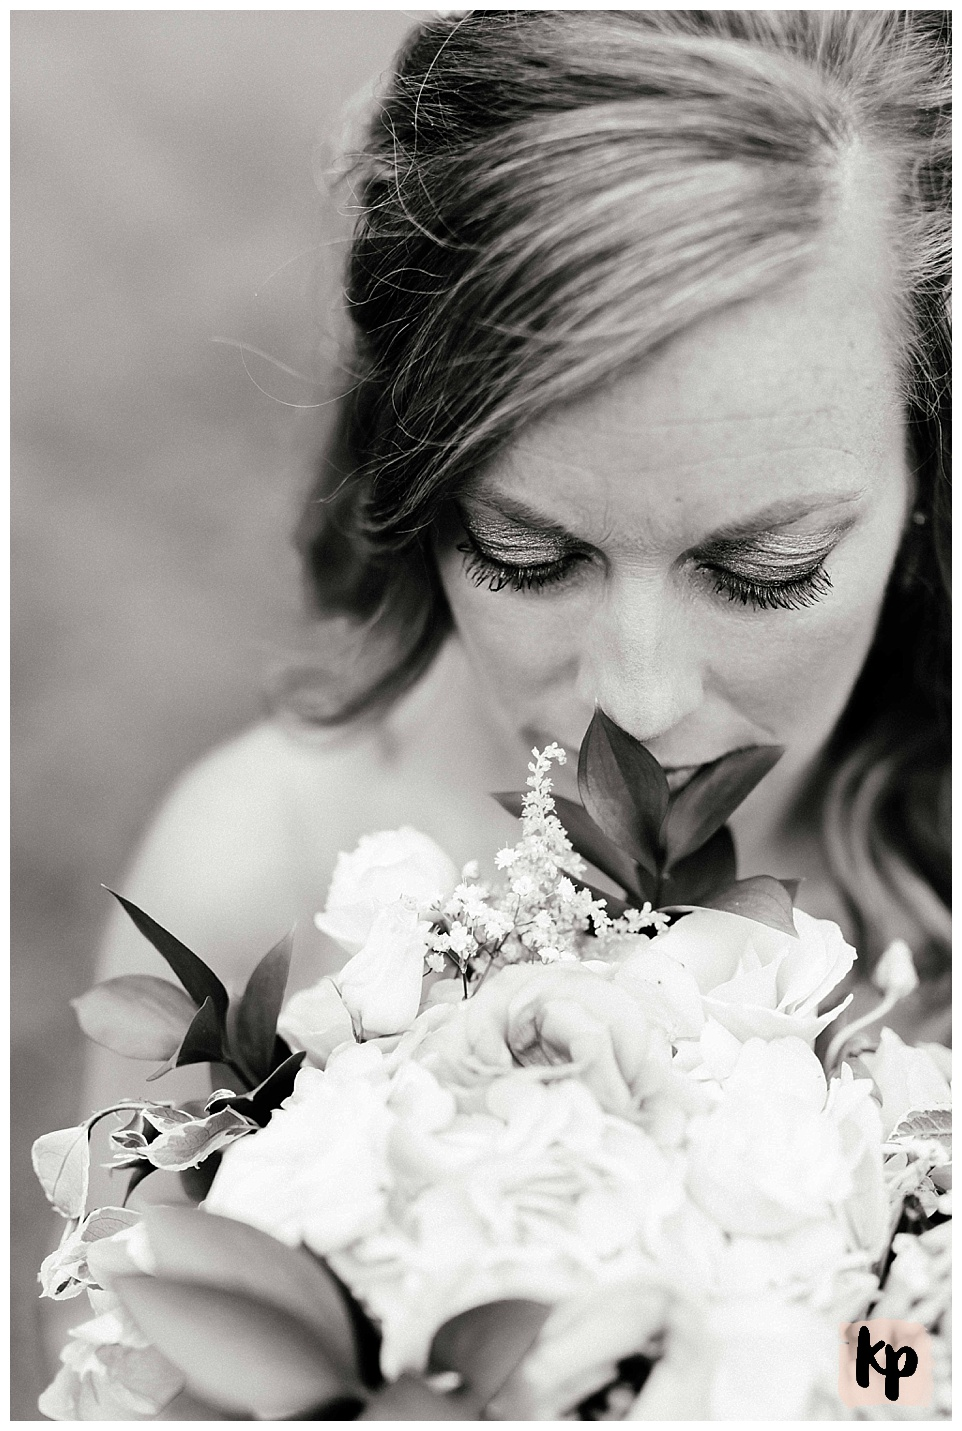 Erik + Stacey | Just Married_0566.jpg